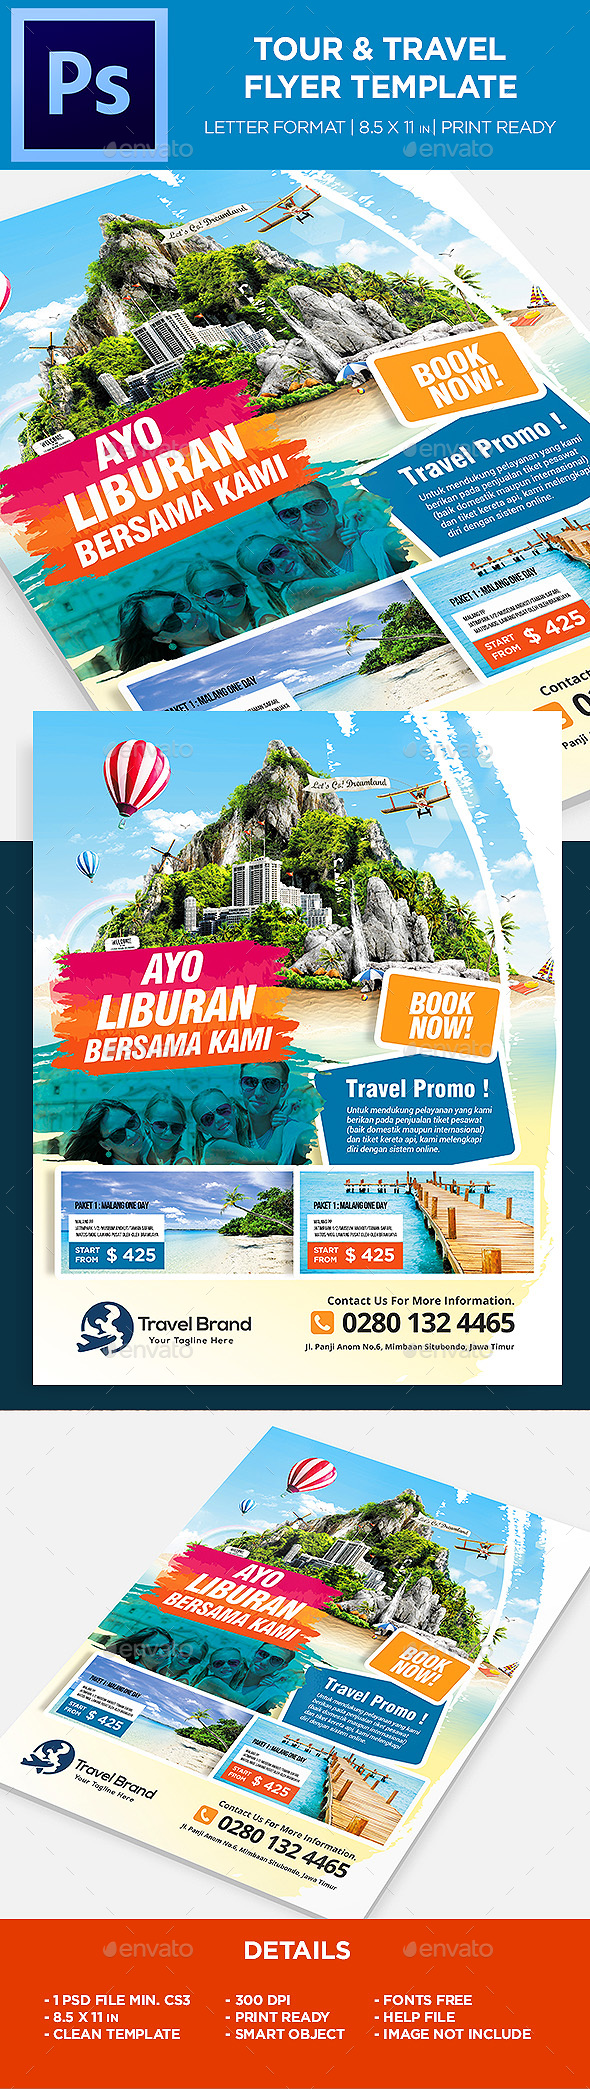 Travel Flyer By Ivanjoys19 Graphicriver